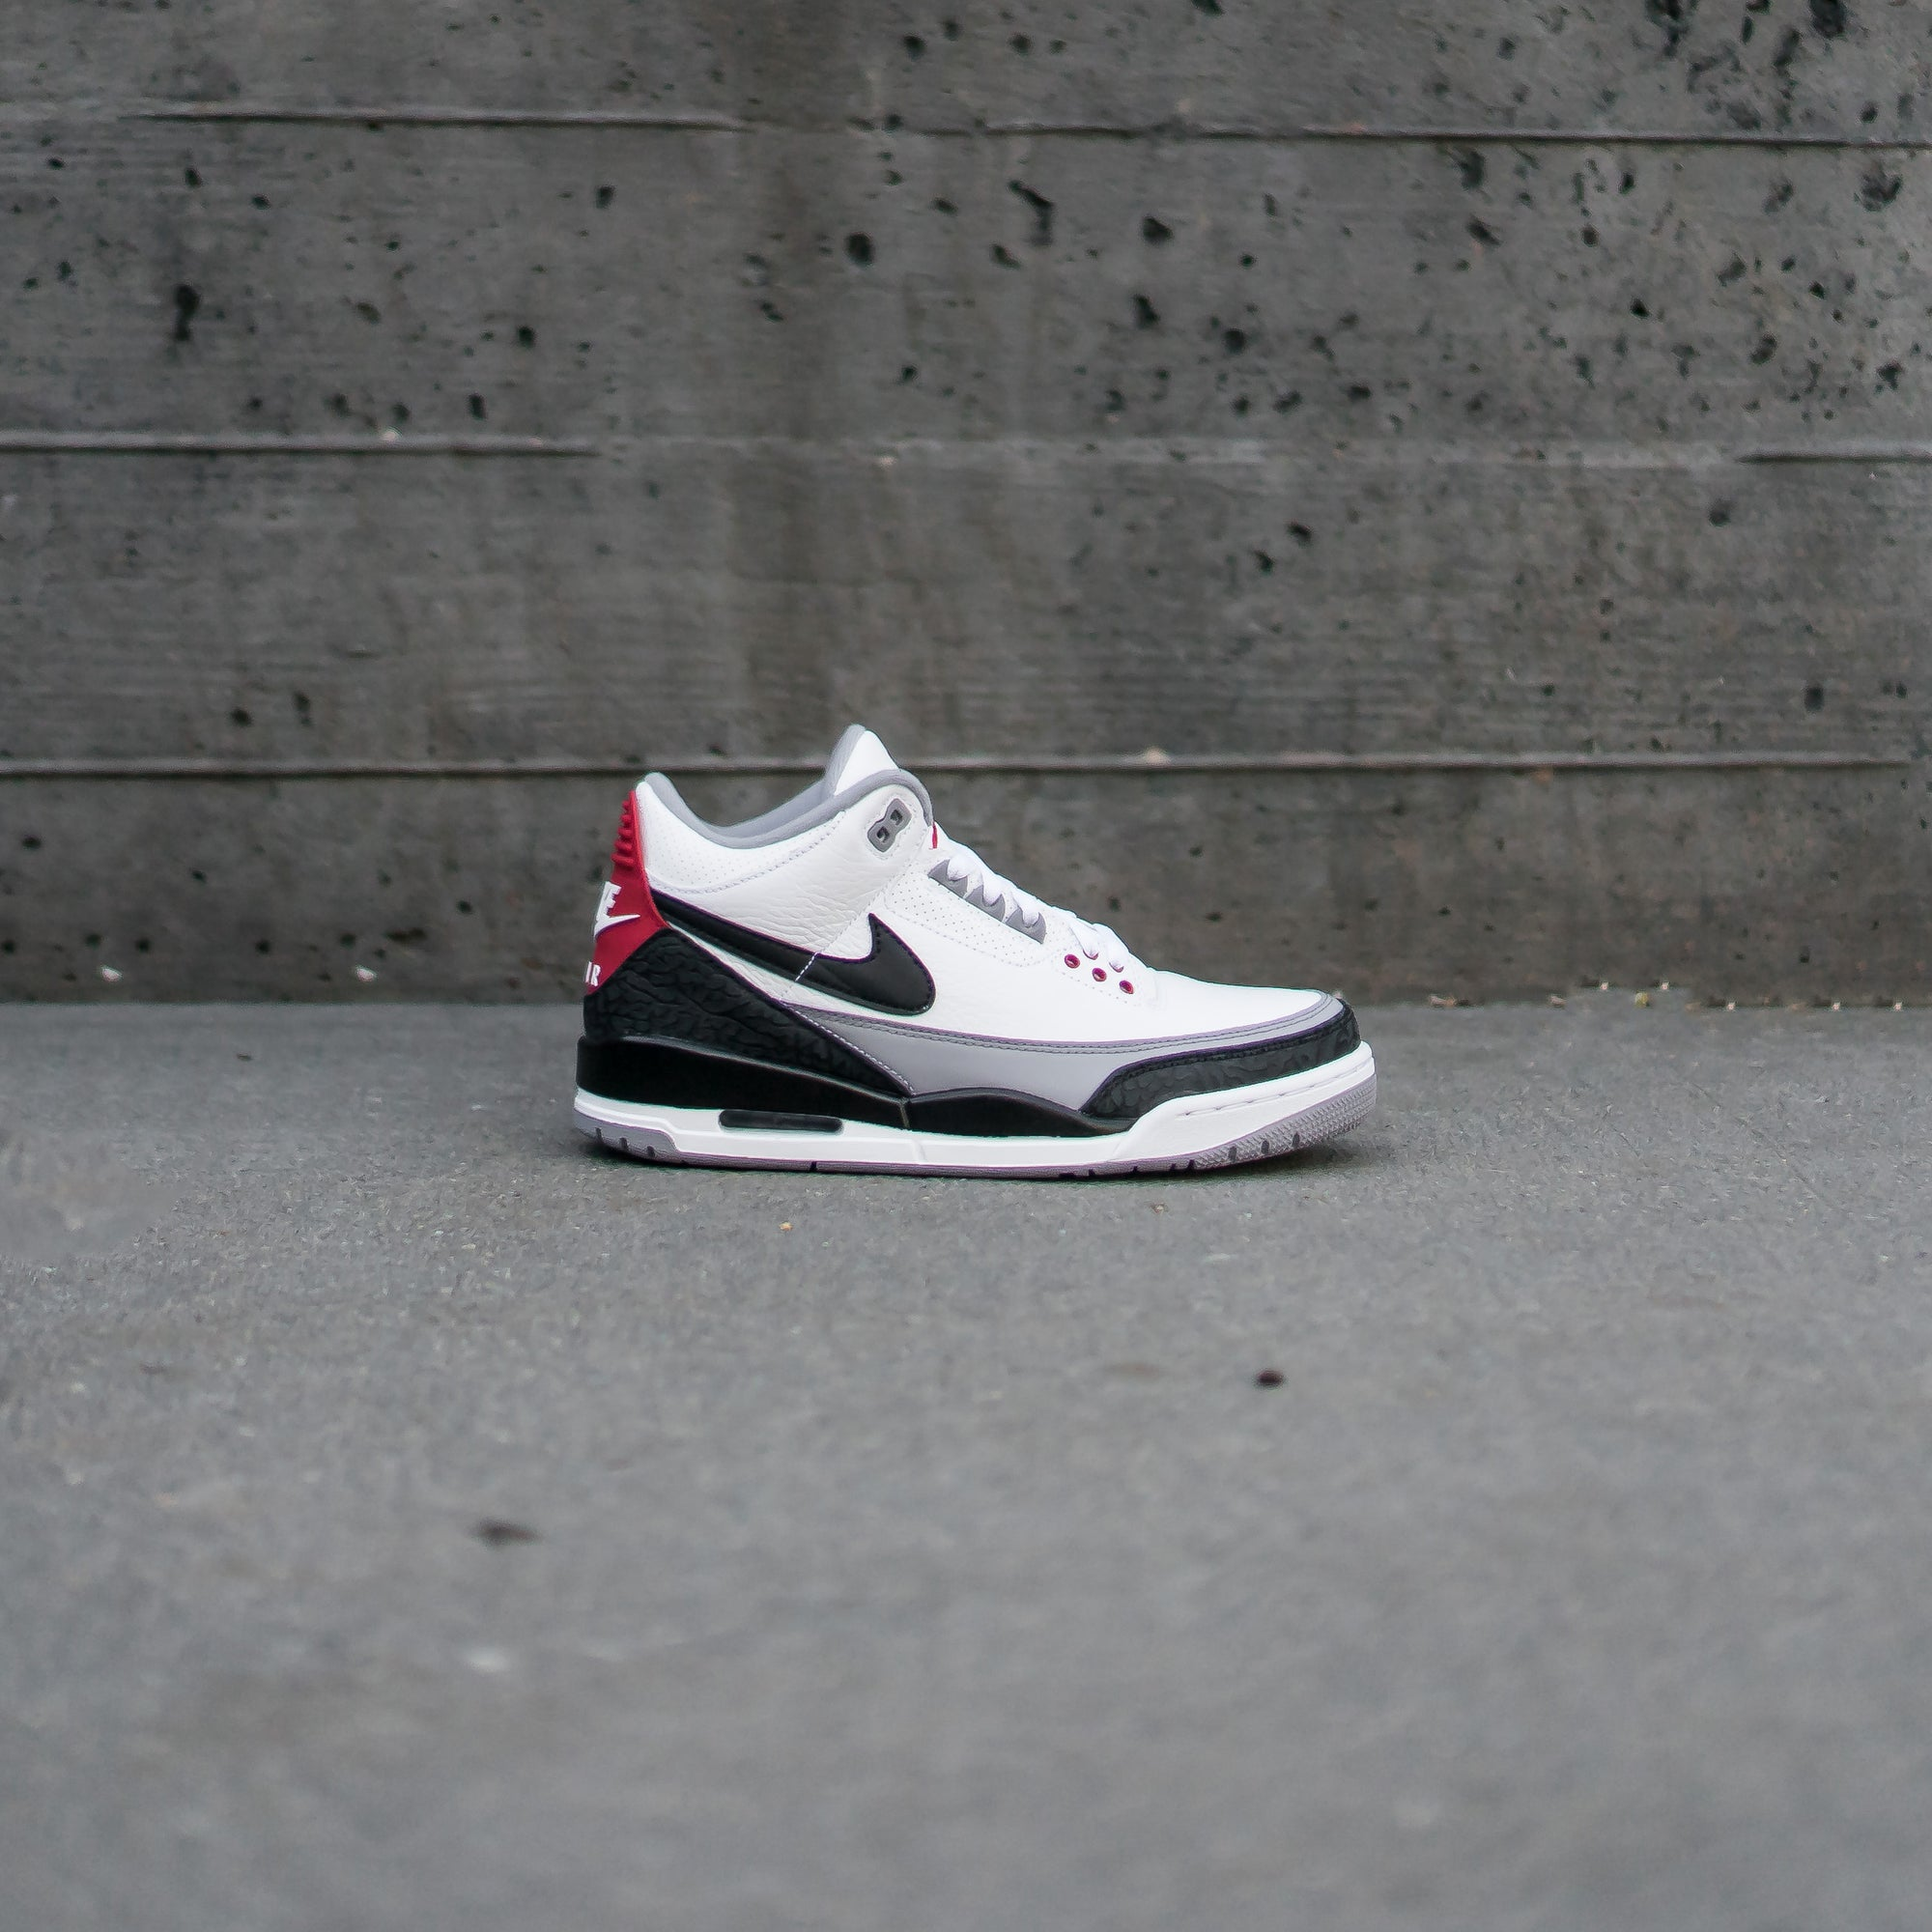 "Air Jordan 3 'Tinker Hatfield"" Available  4.30 FCFS"